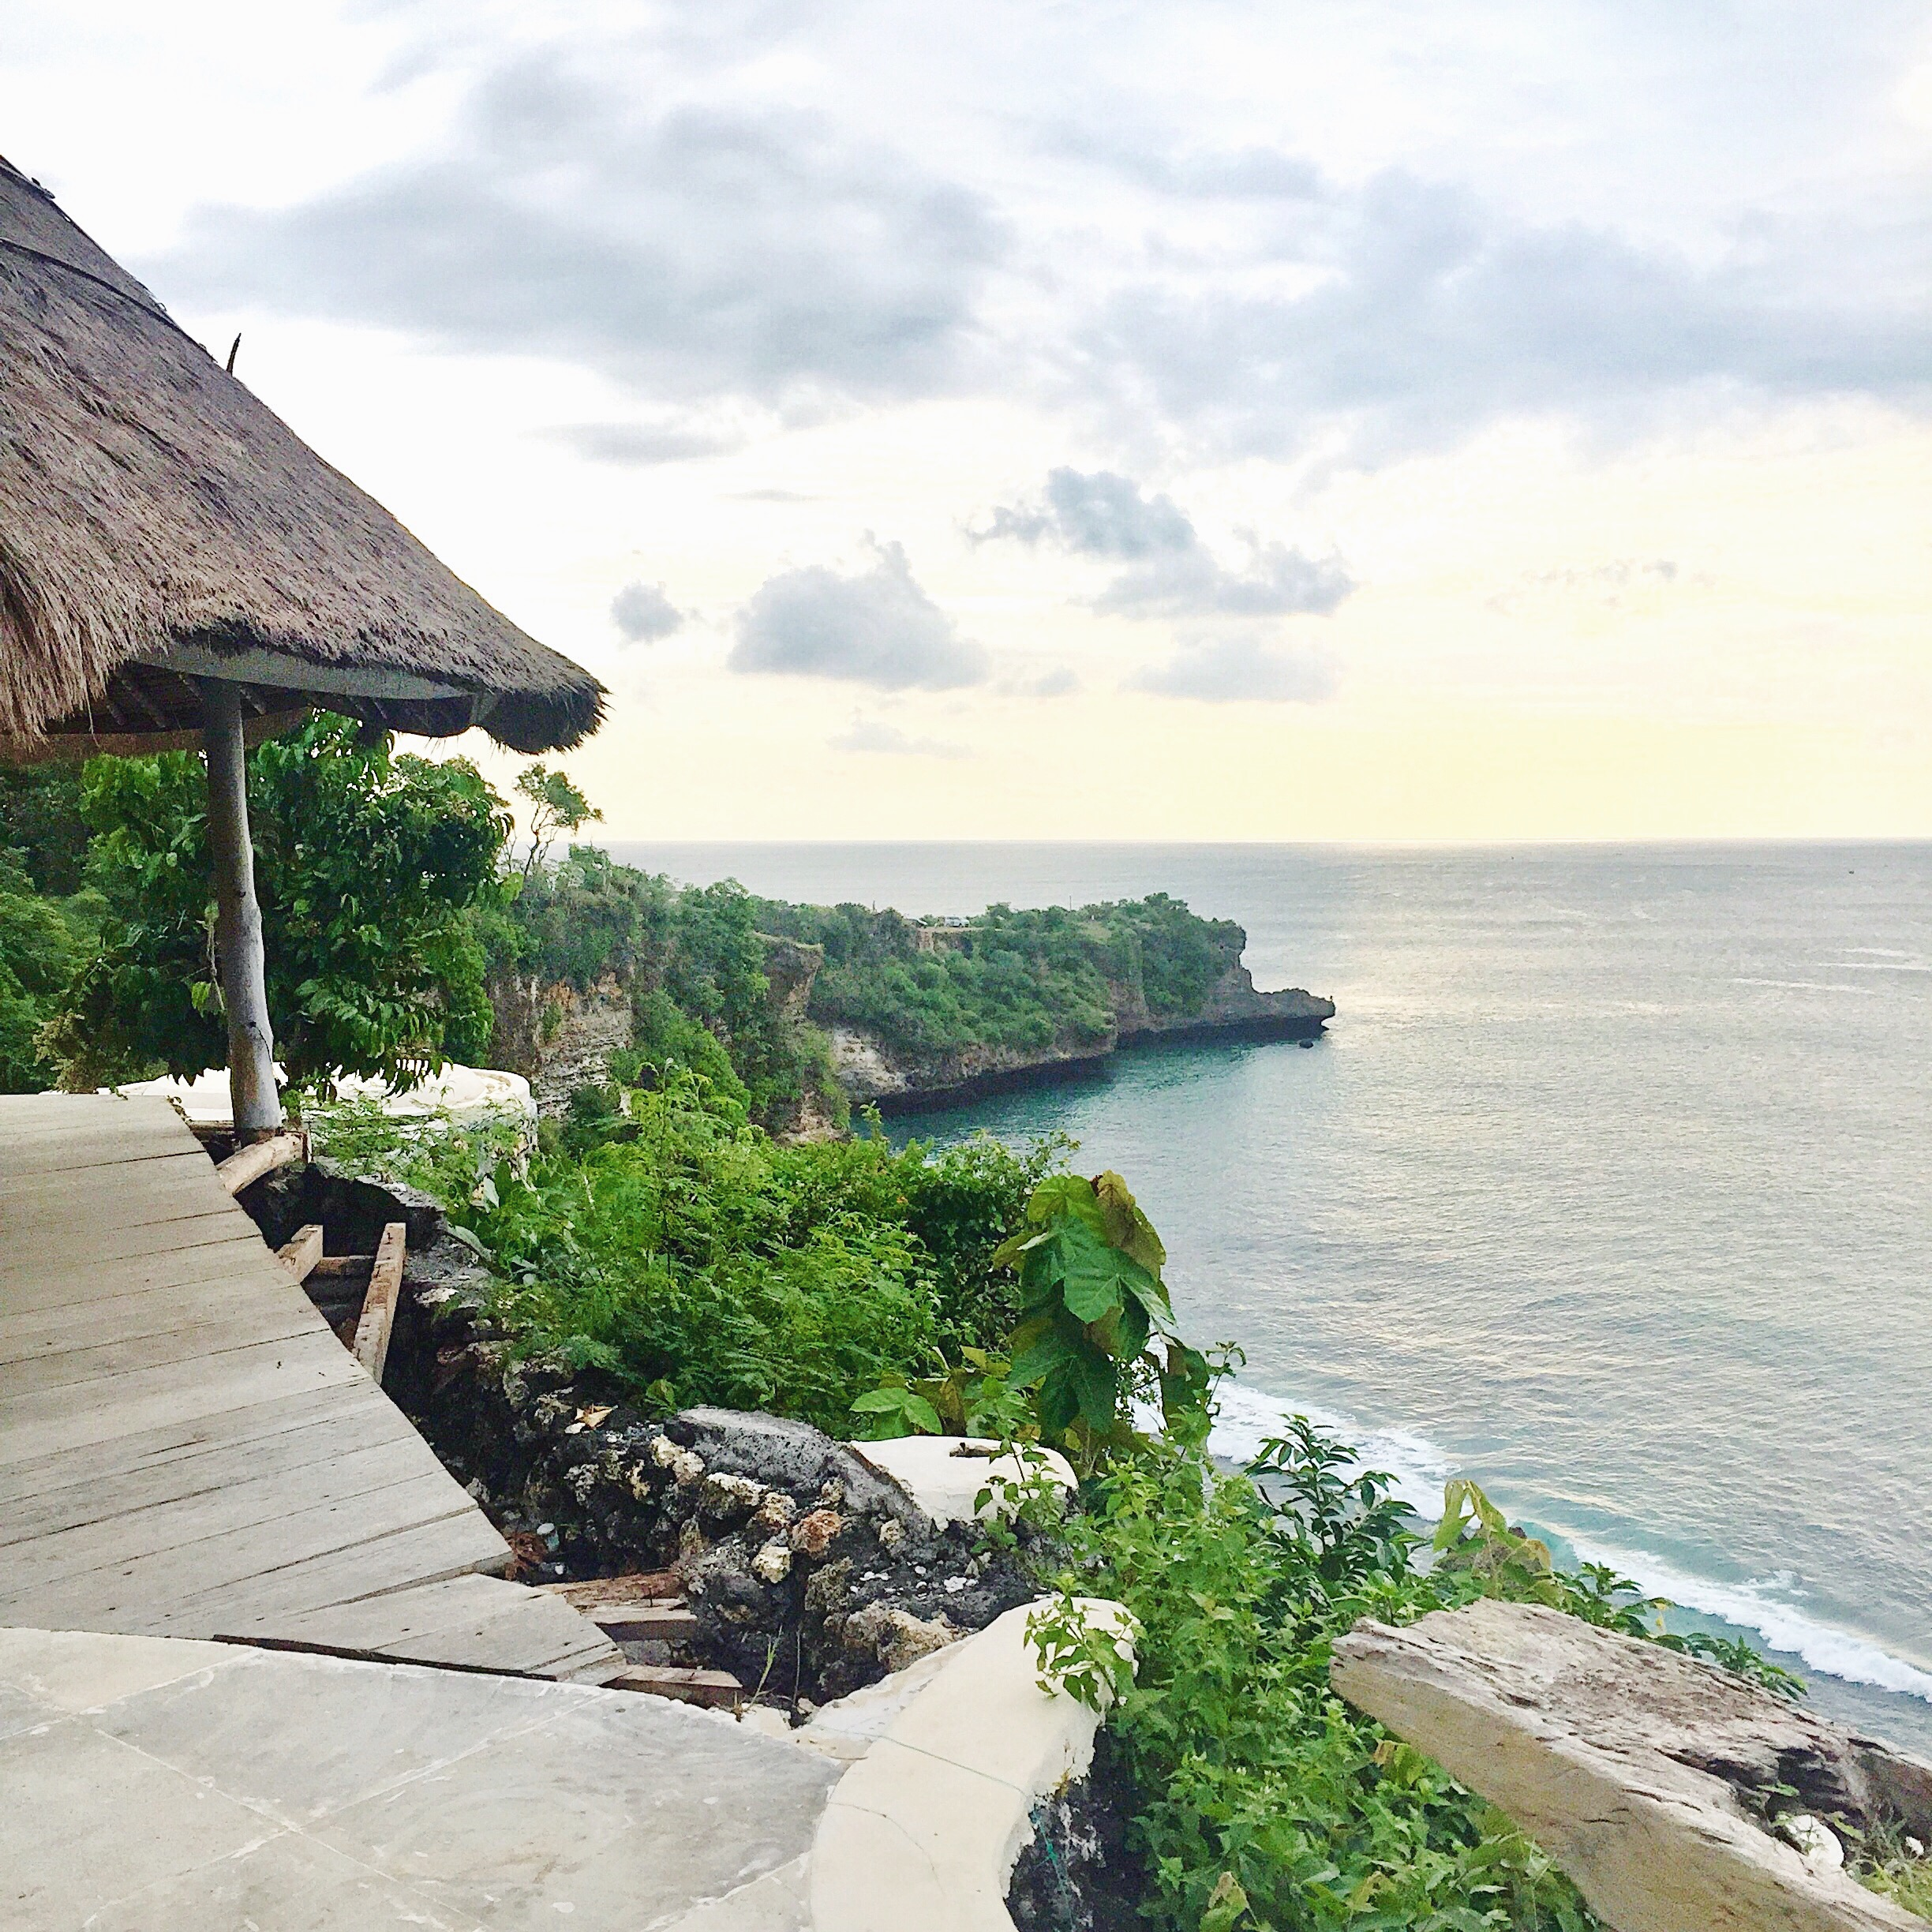 Bali Hotel with breathtaking ocean view